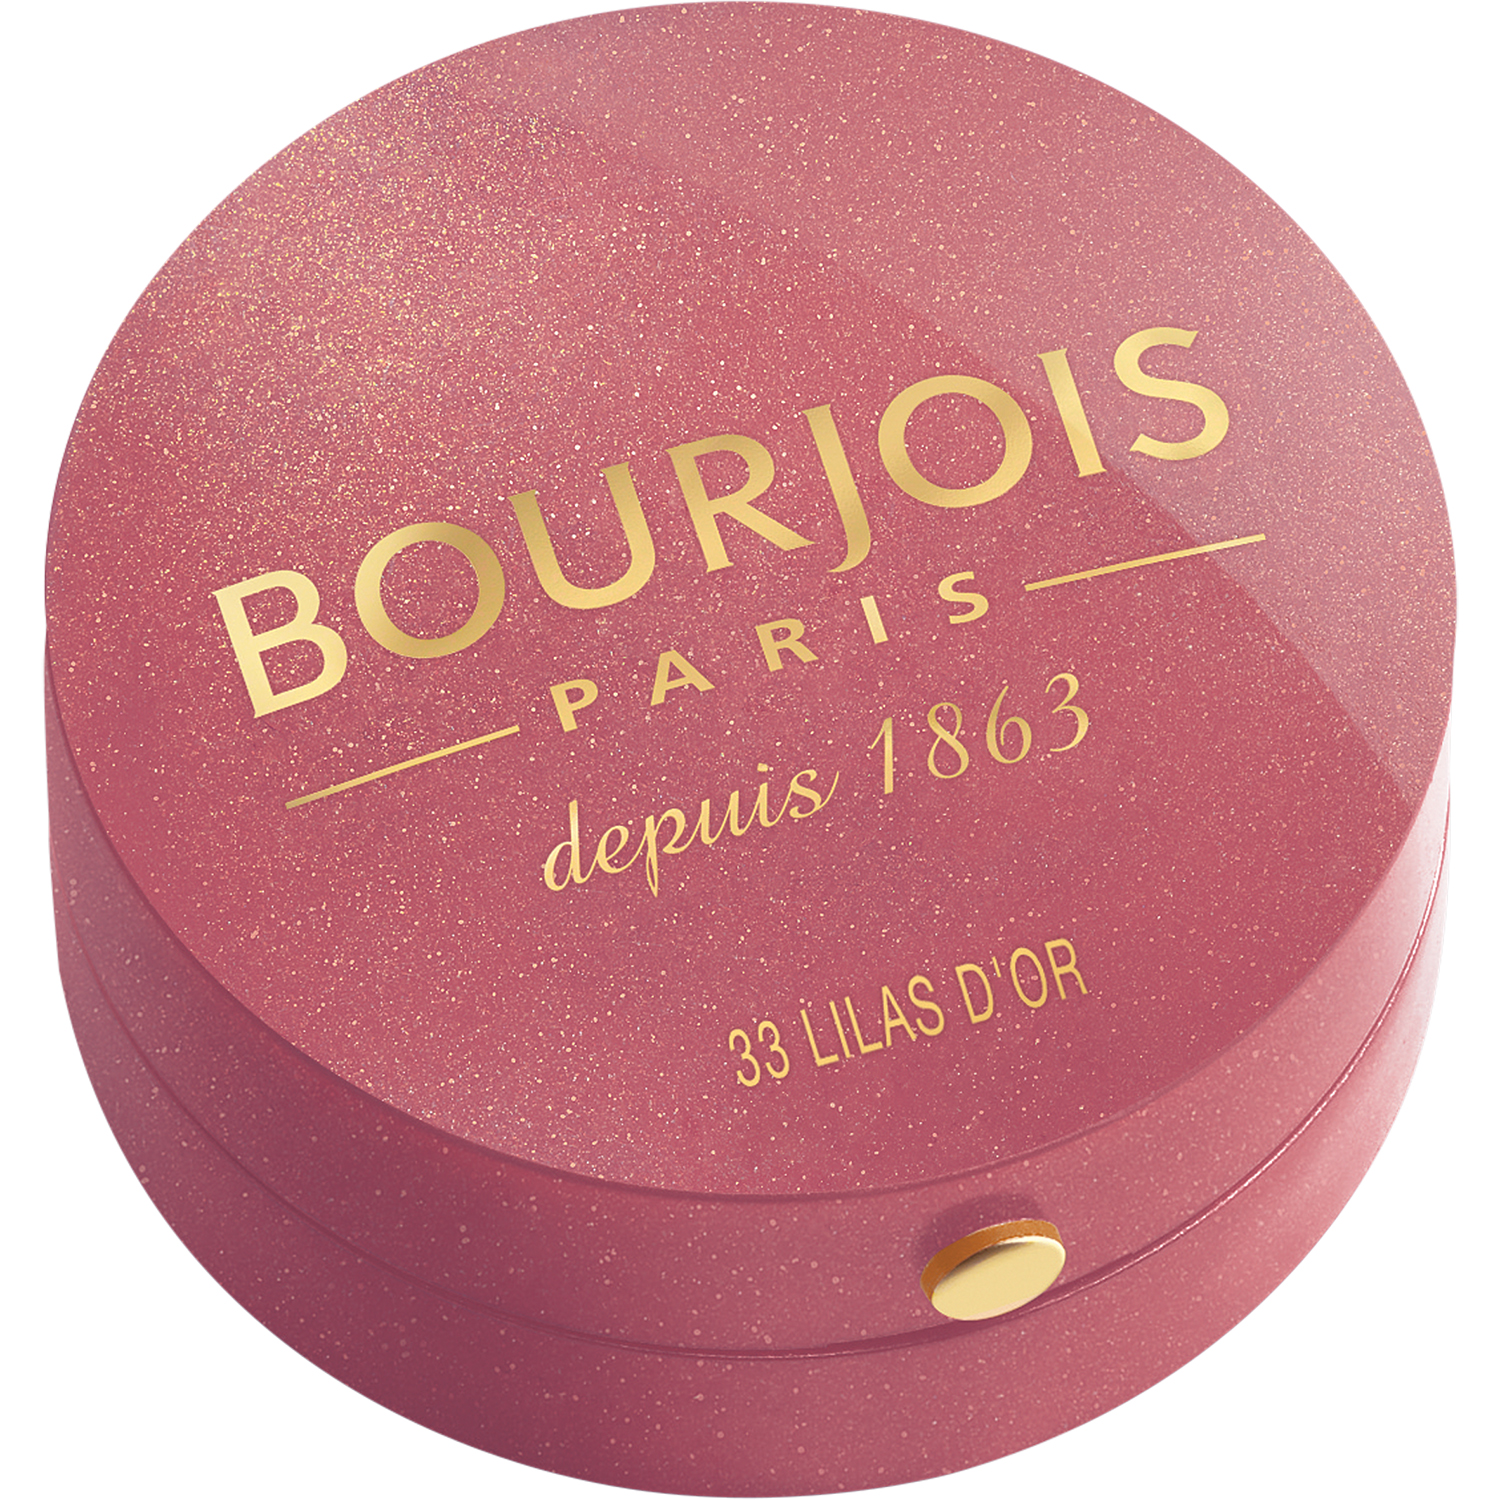 BOURJOIS Румяна для лица 33 / Blusher lilas d`or - Румяна